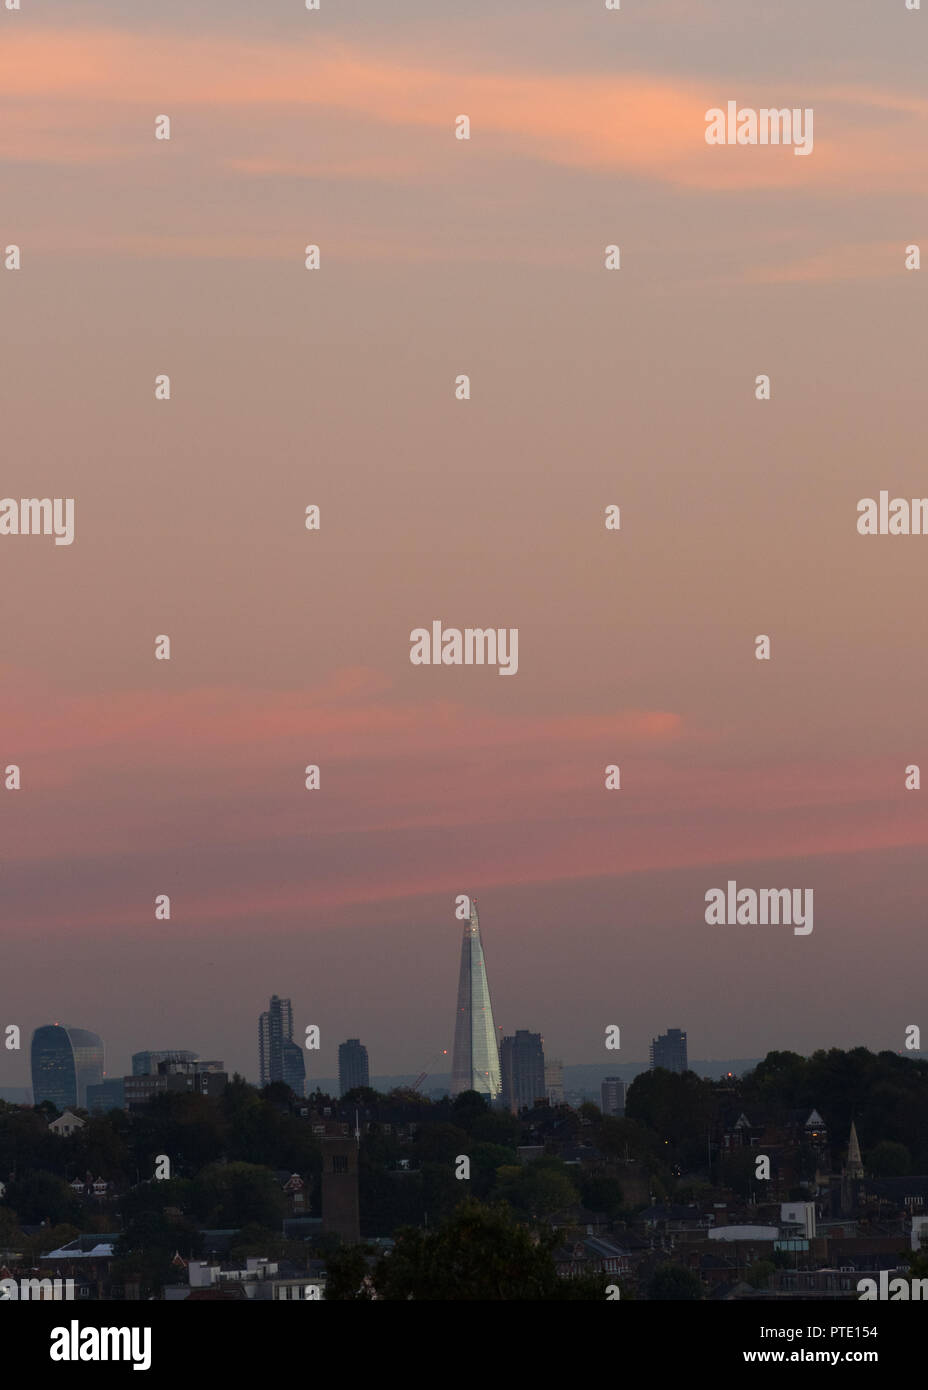 Alexandra Palace, London UK. Tuesday 9th October 2018. UK Weather, pink skies over London during sunset.London skyline with shard. Credit: carol moir/Alamy Live News Stock Photo